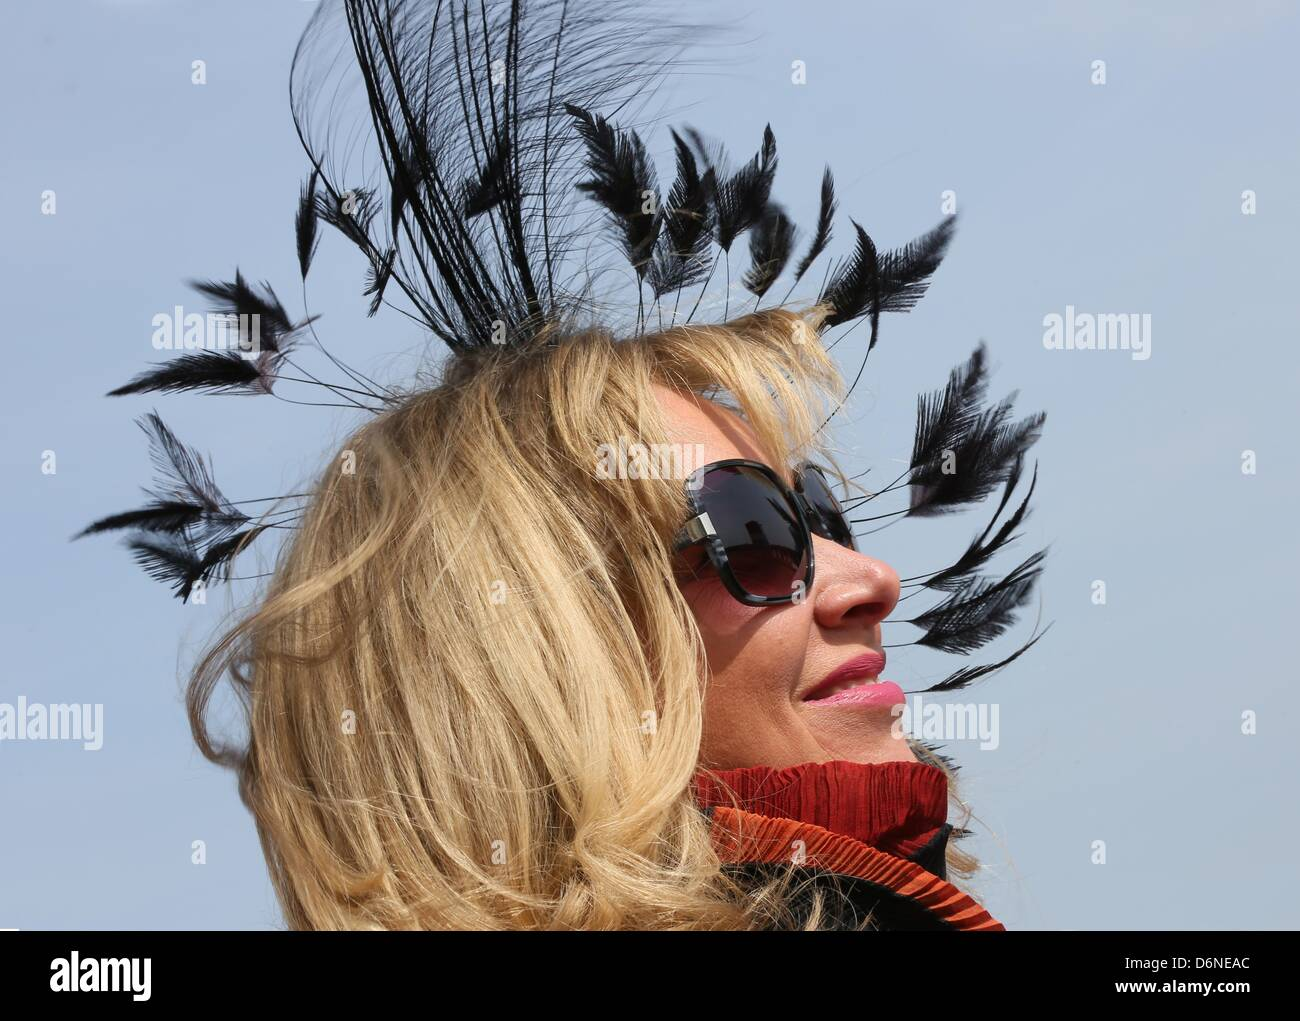 Fashion designer Nanna Kuckuck shows her new hat prior to the first horserace of the season in the racecourse Hoppegarten - Stock Image